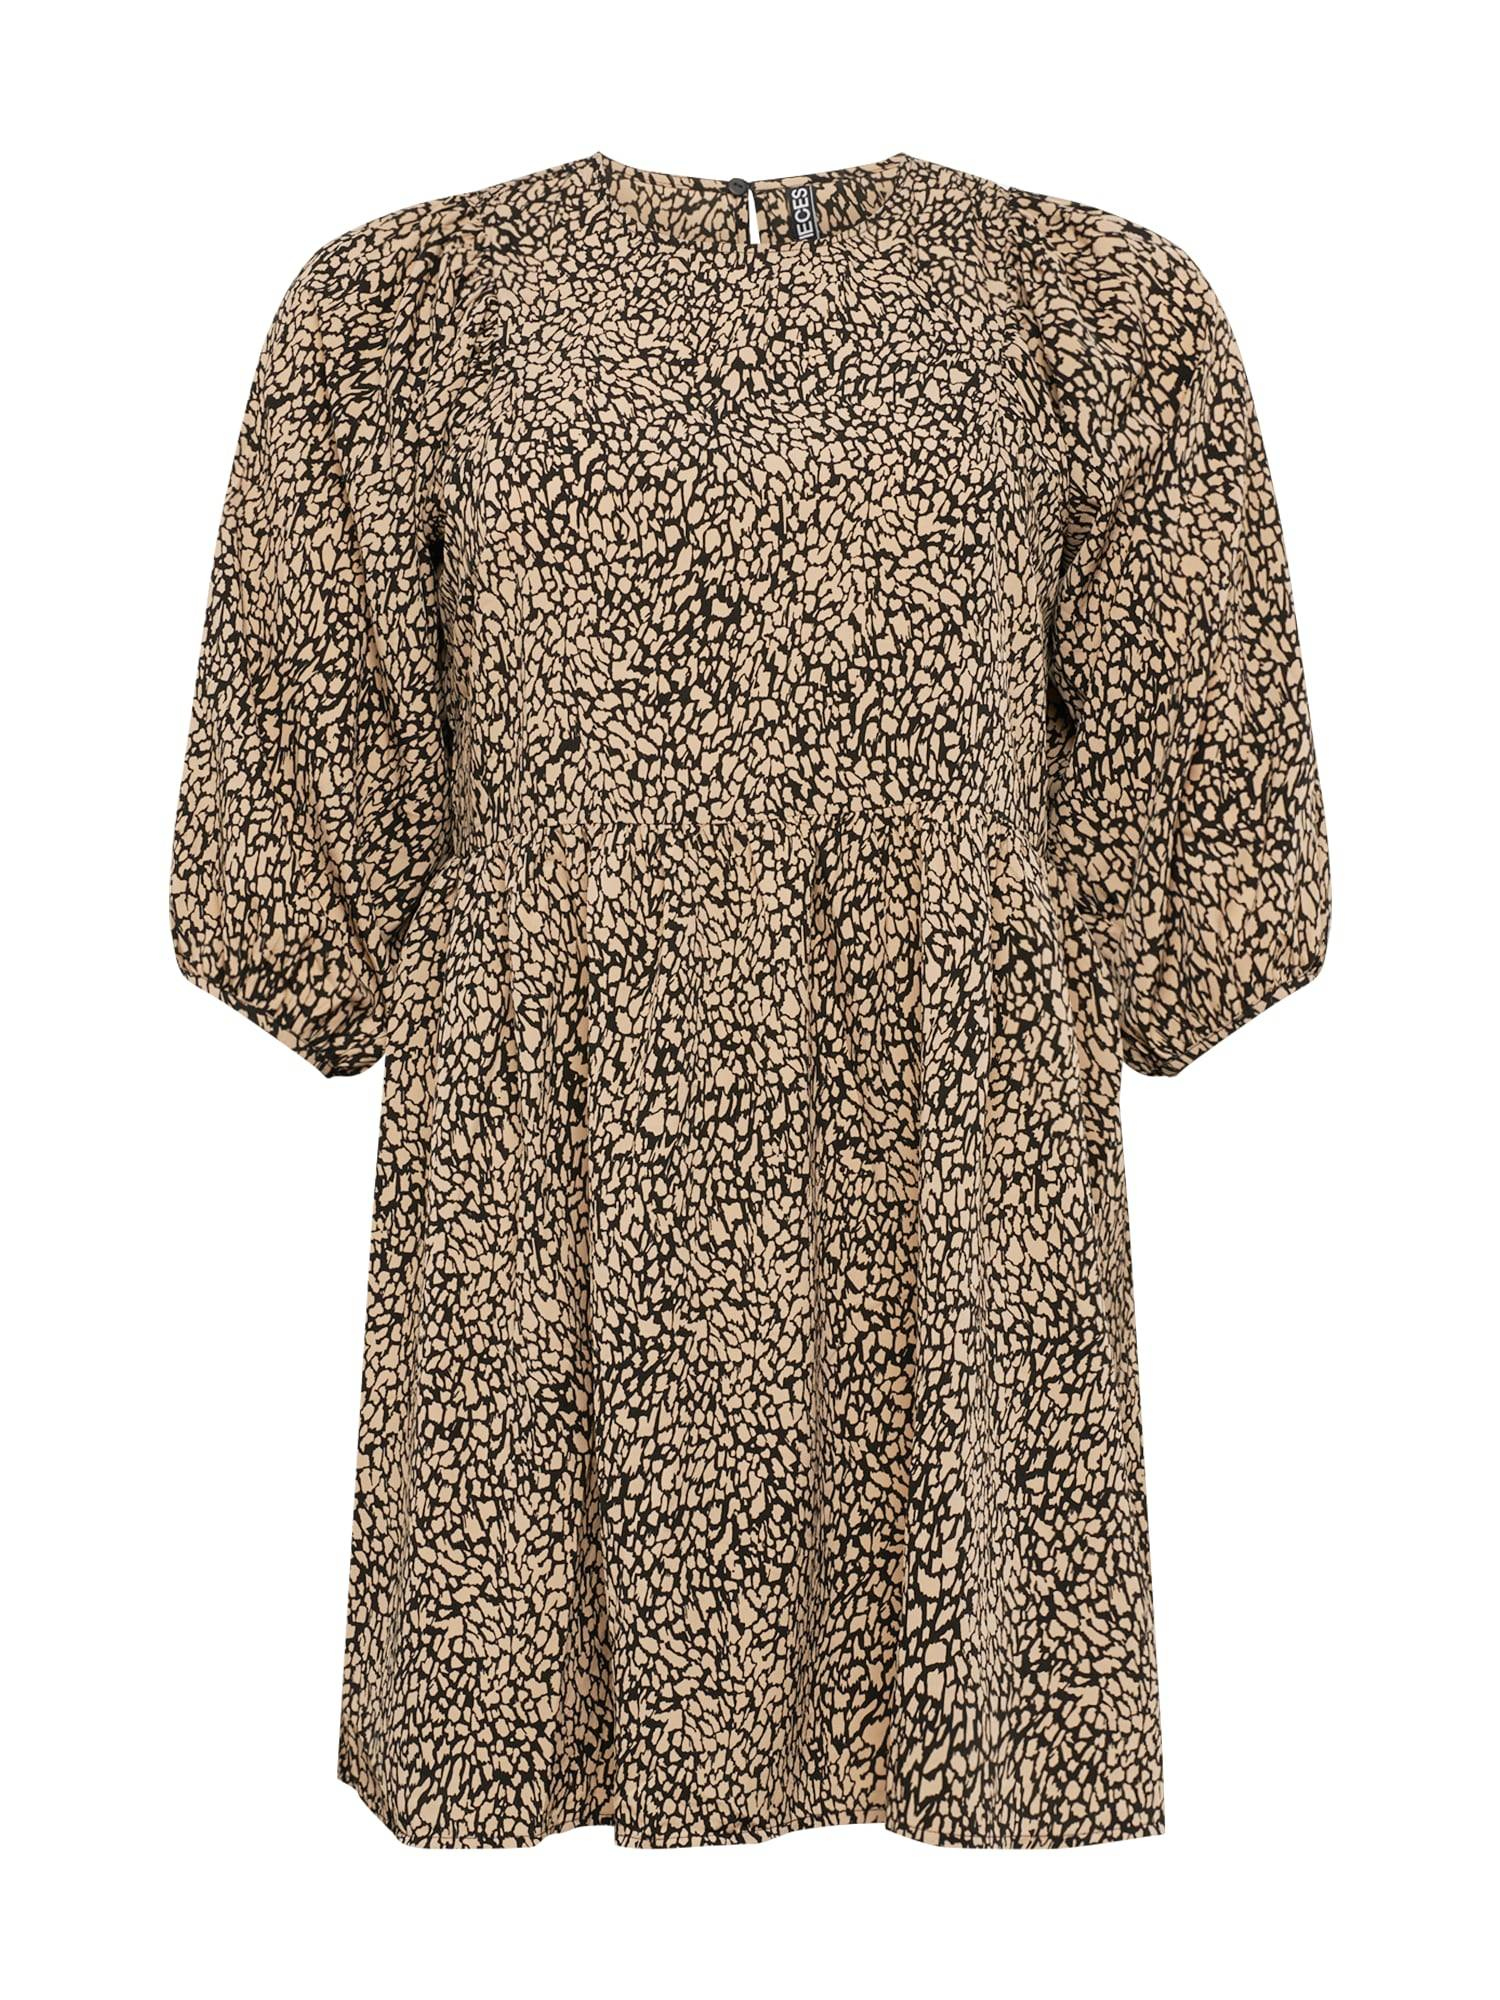 PIECES (Curve) Robe 'GILBERTA'  - Beige - Taille: 48 - female